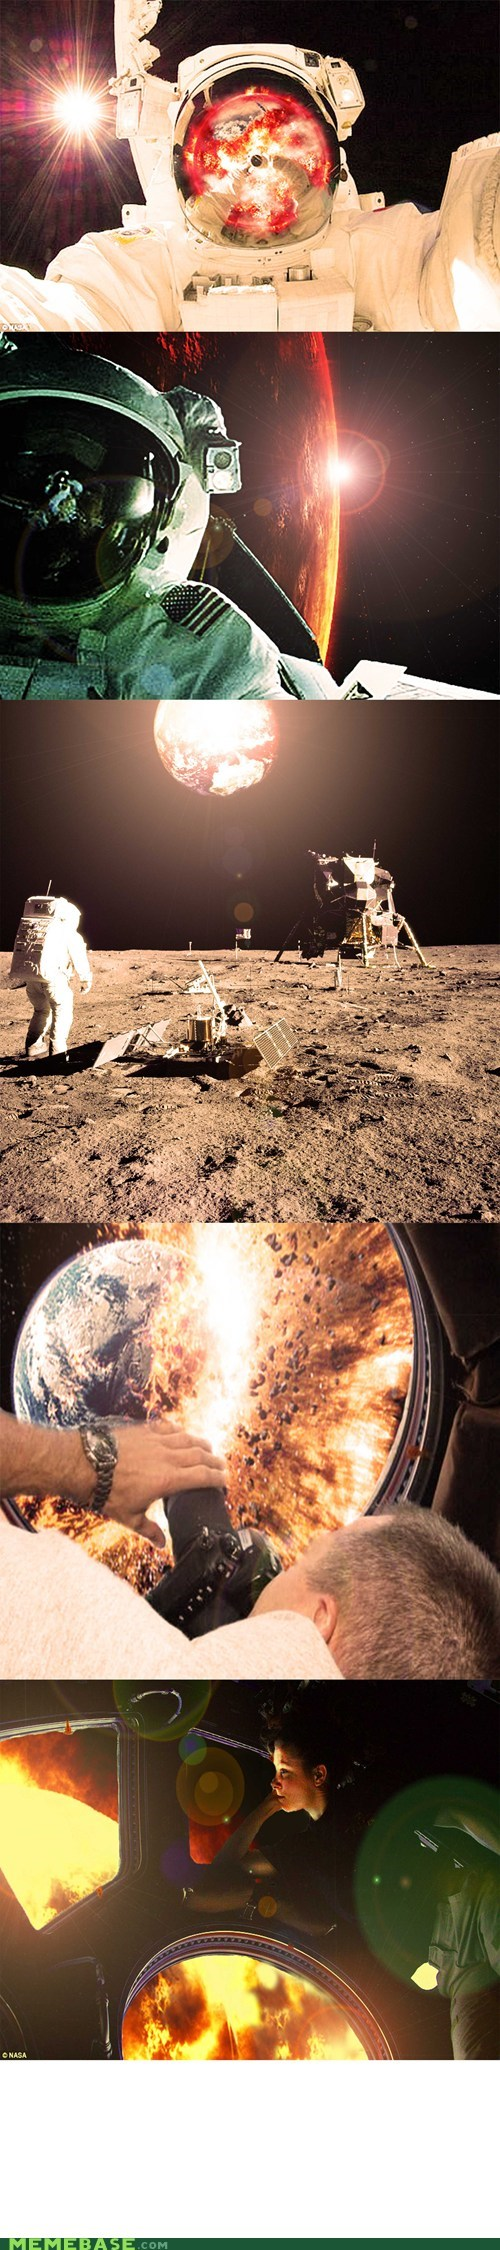 world burn,photoshop,astronaut,space